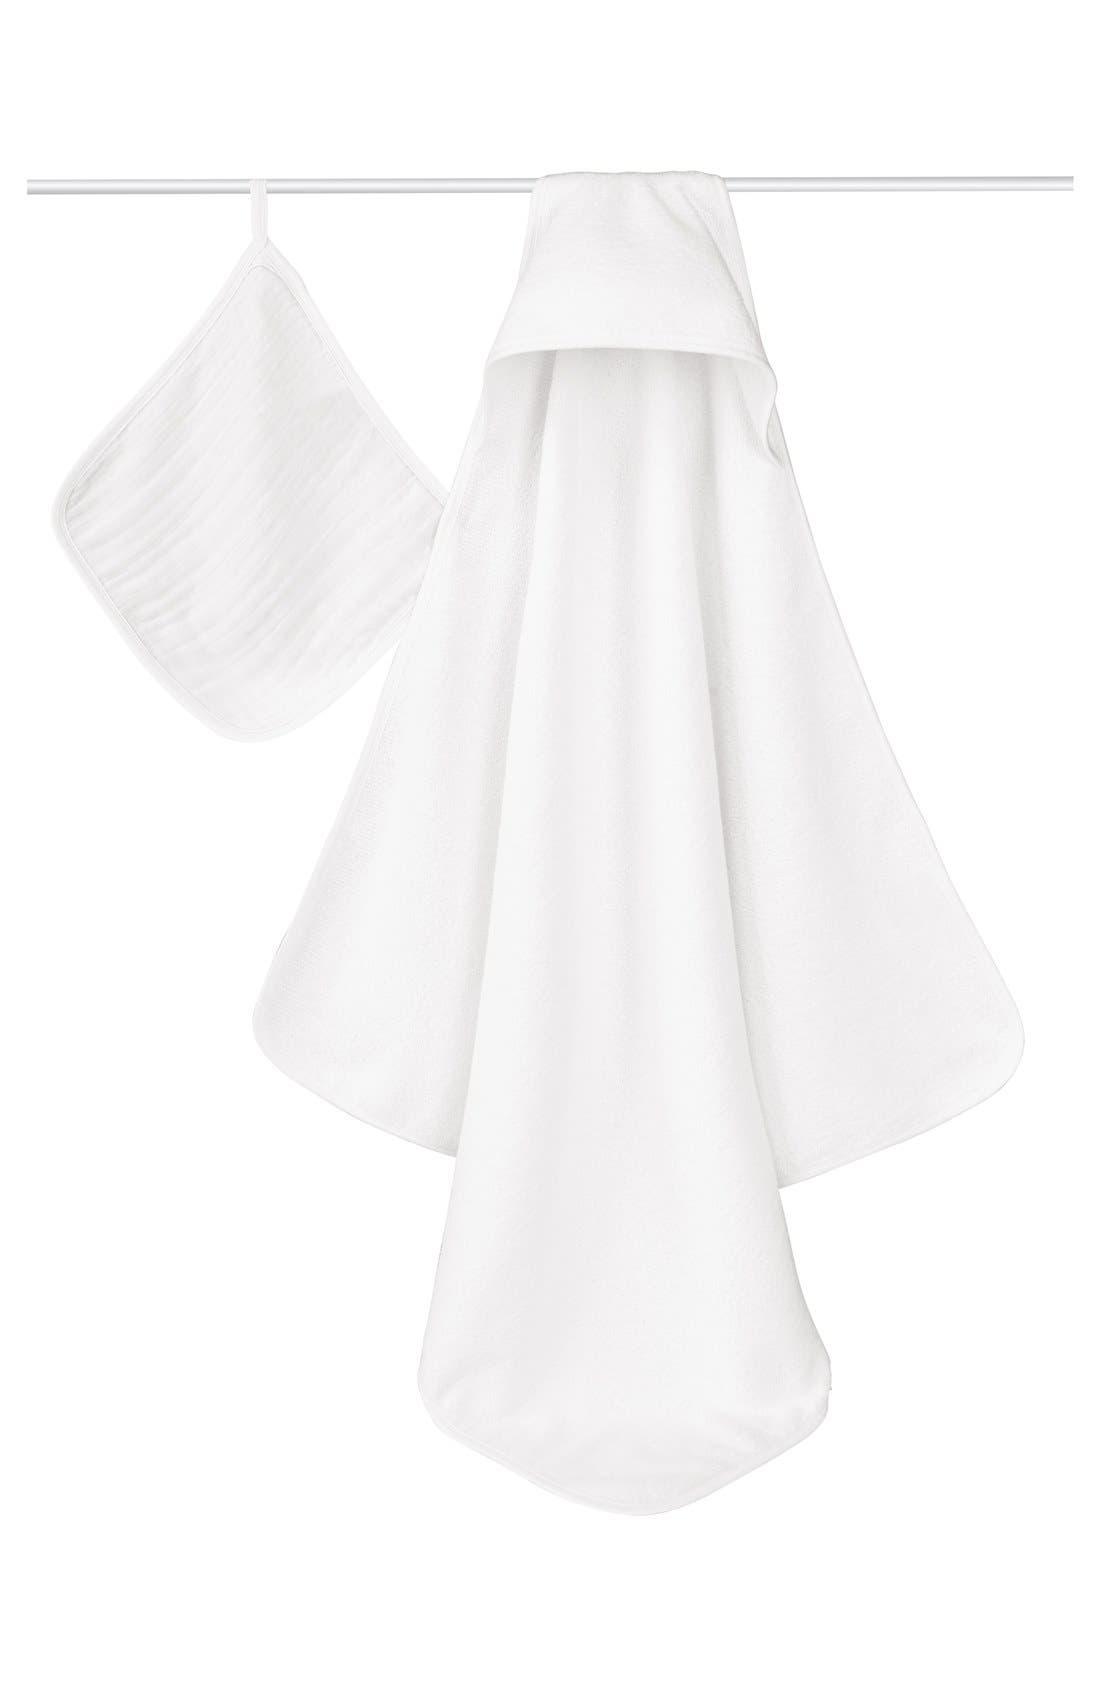 Main Image - aden + anais Classic Hooded Towel Set